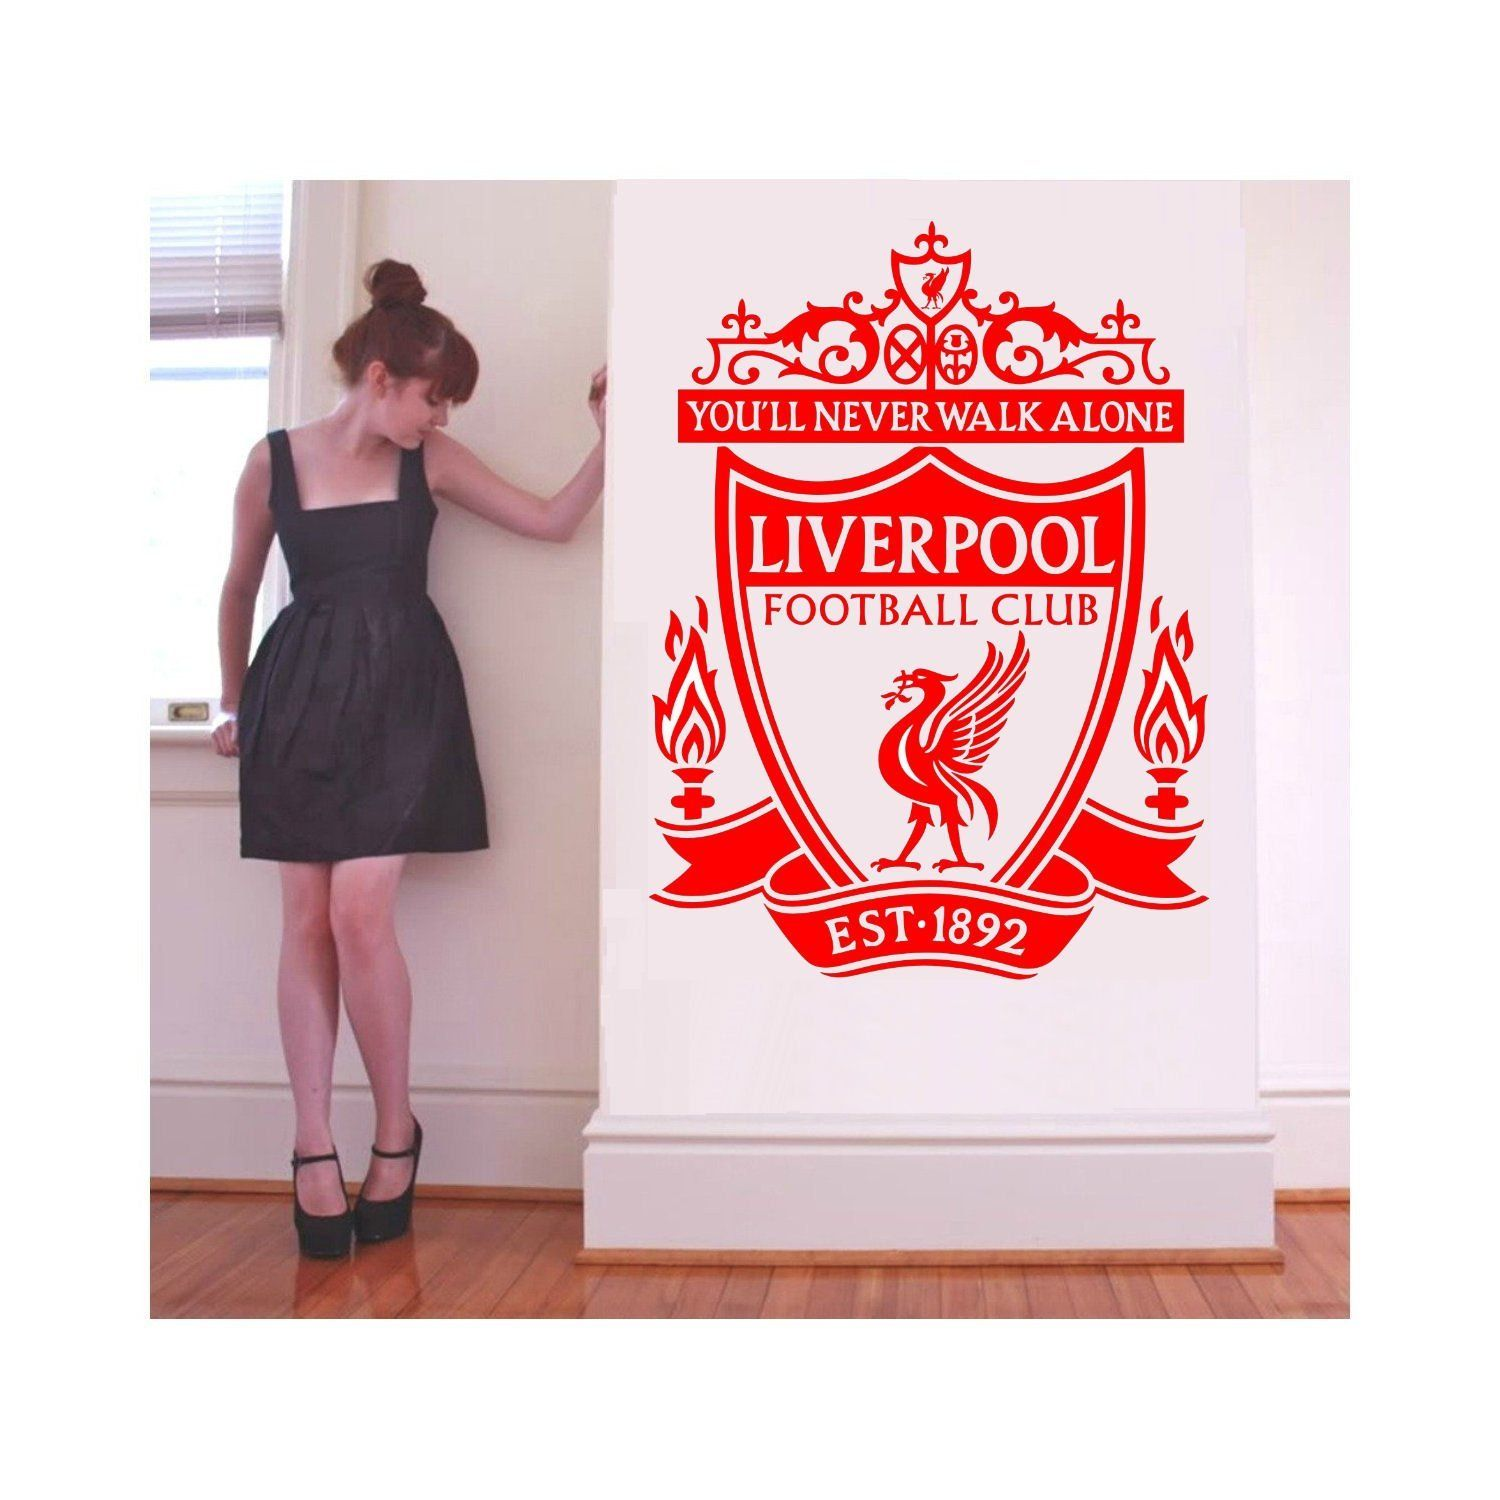 liverpool fc wall decal from amazon http www amazon co uk large liverpool fc wall decal from amazon http www amazon co